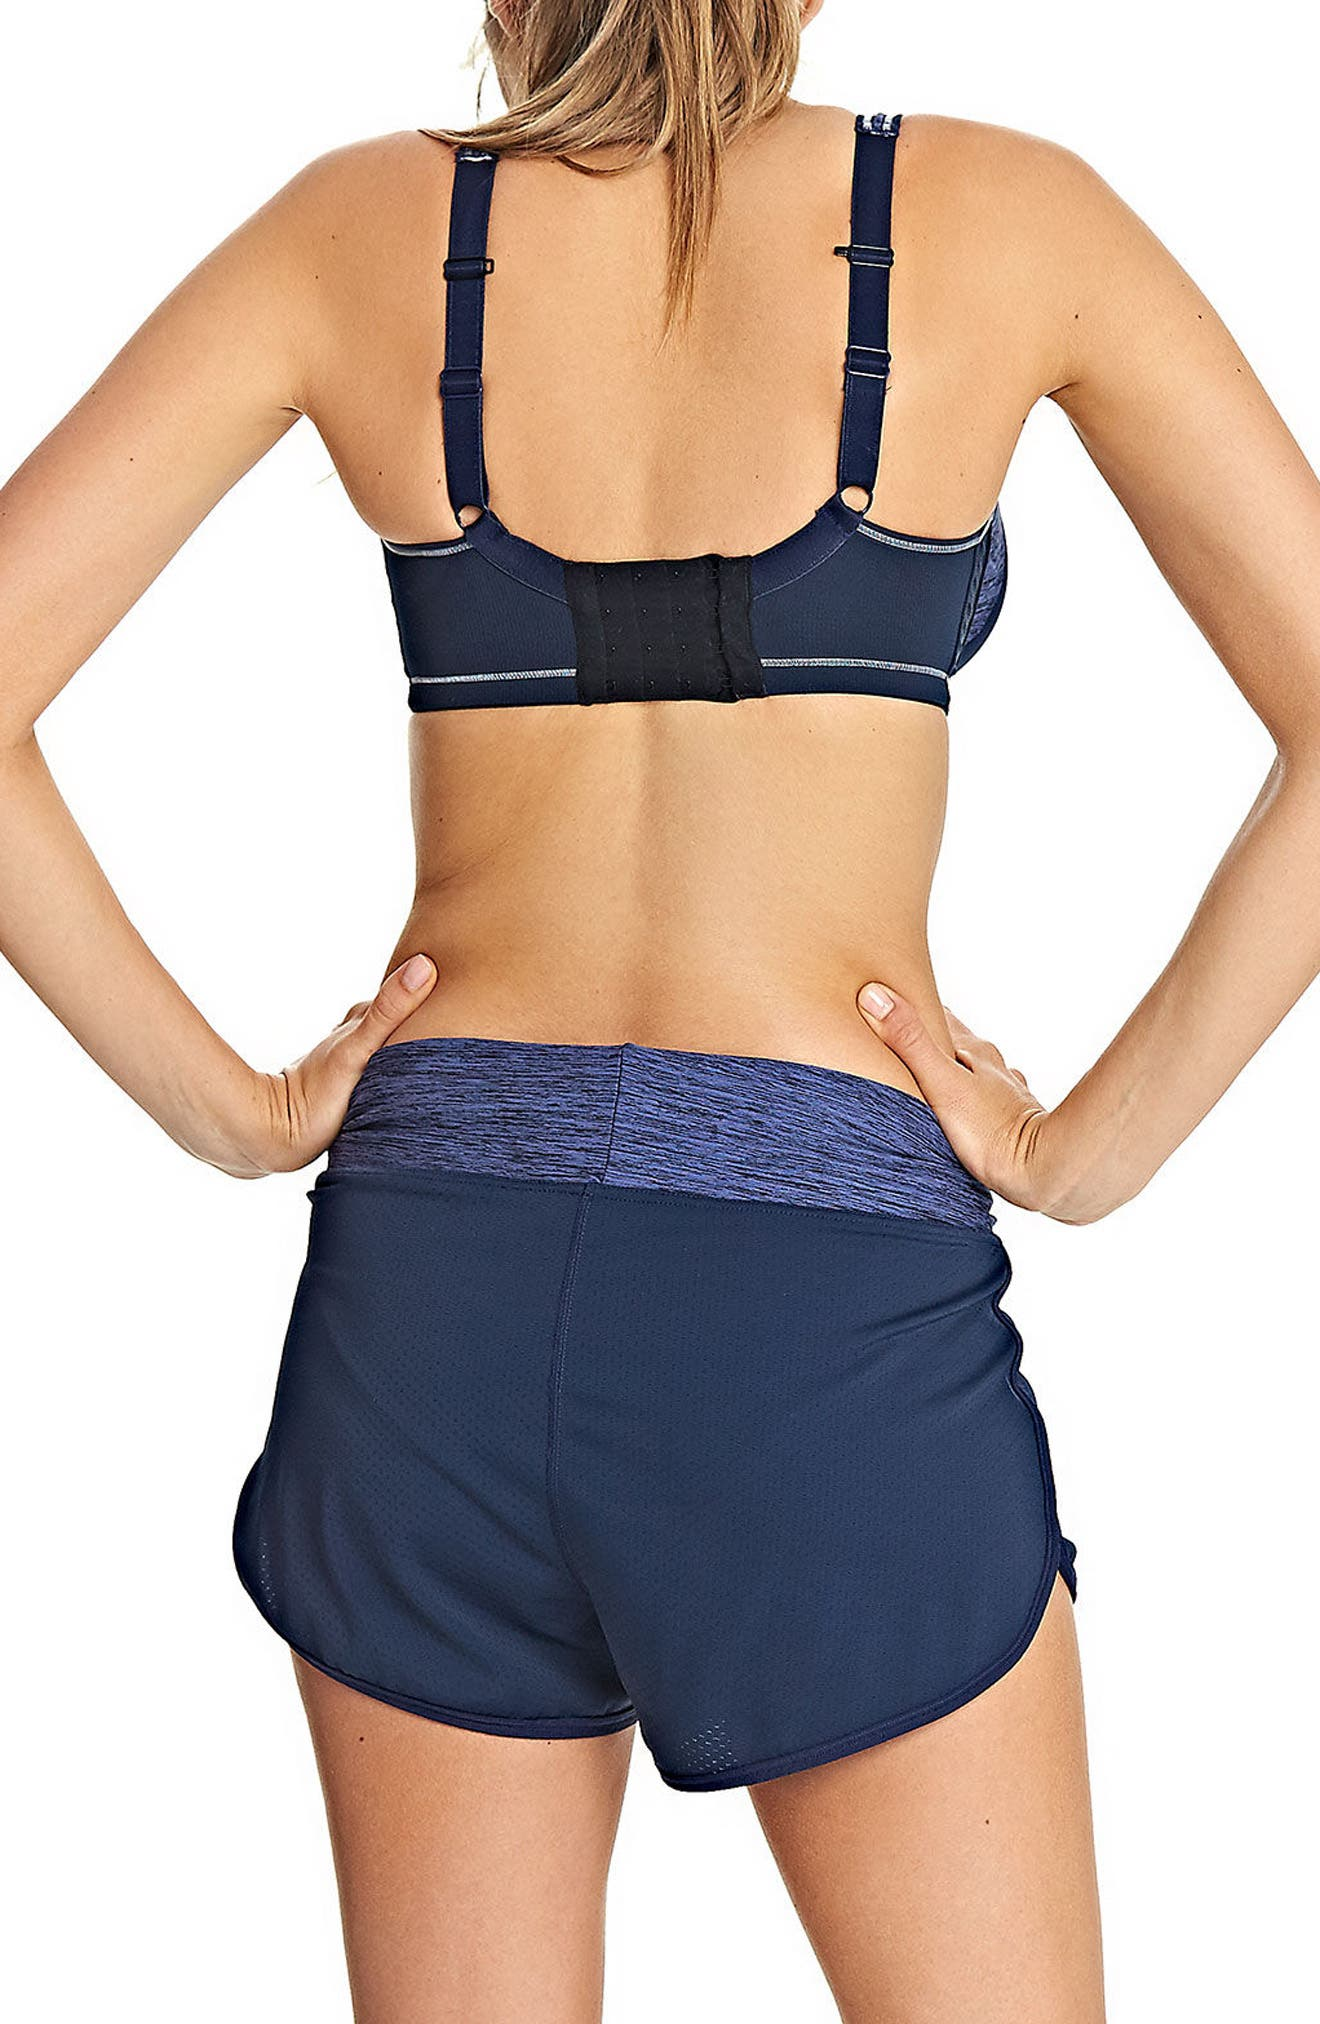 Sonic Underwire Sports Bra,                             Alternate thumbnail 2, color,                             TOTAL ECLIPSE